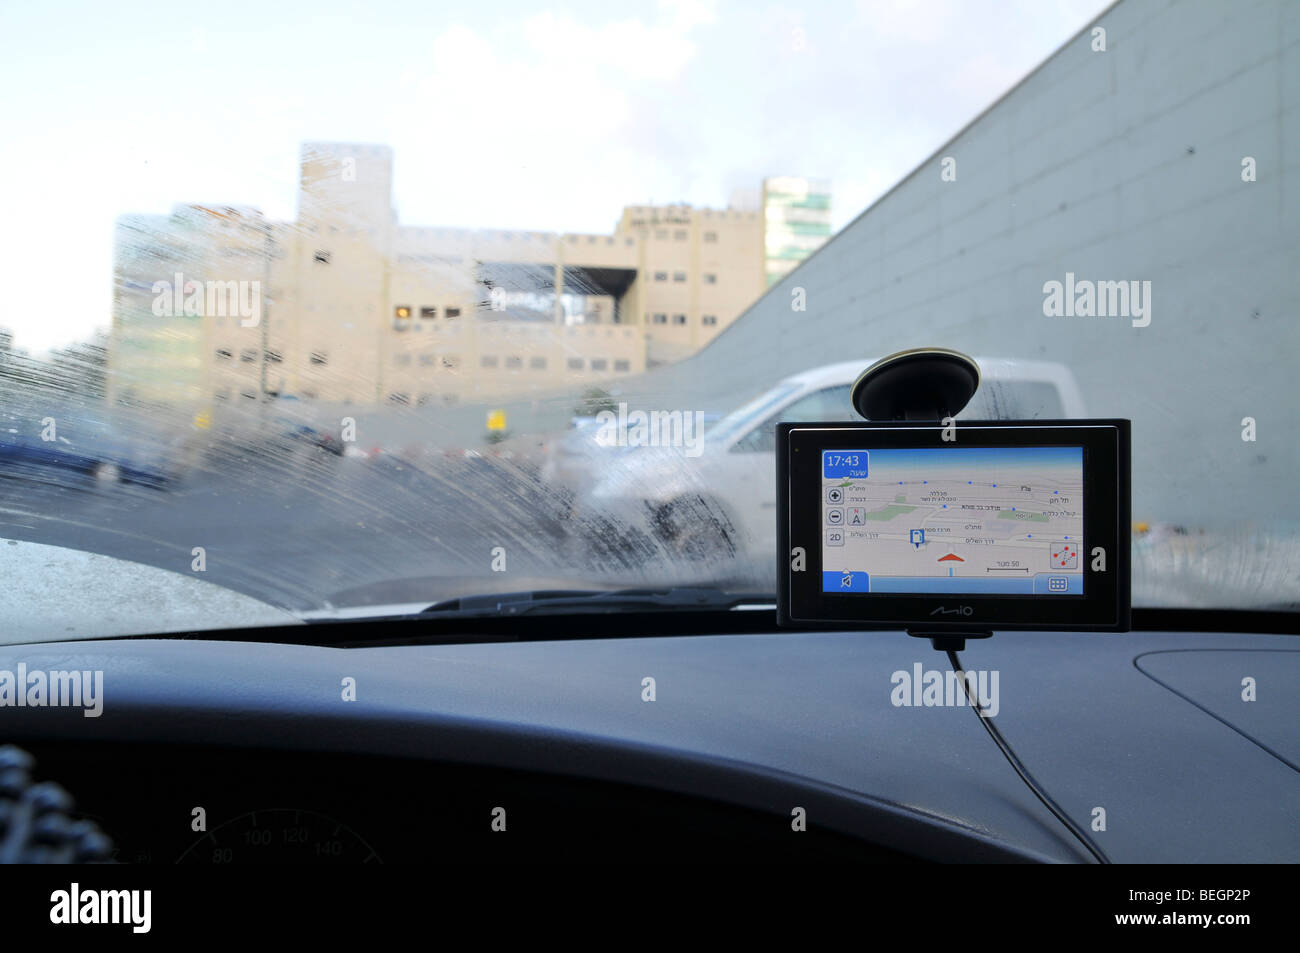 GPS unit in a car - Stock Image